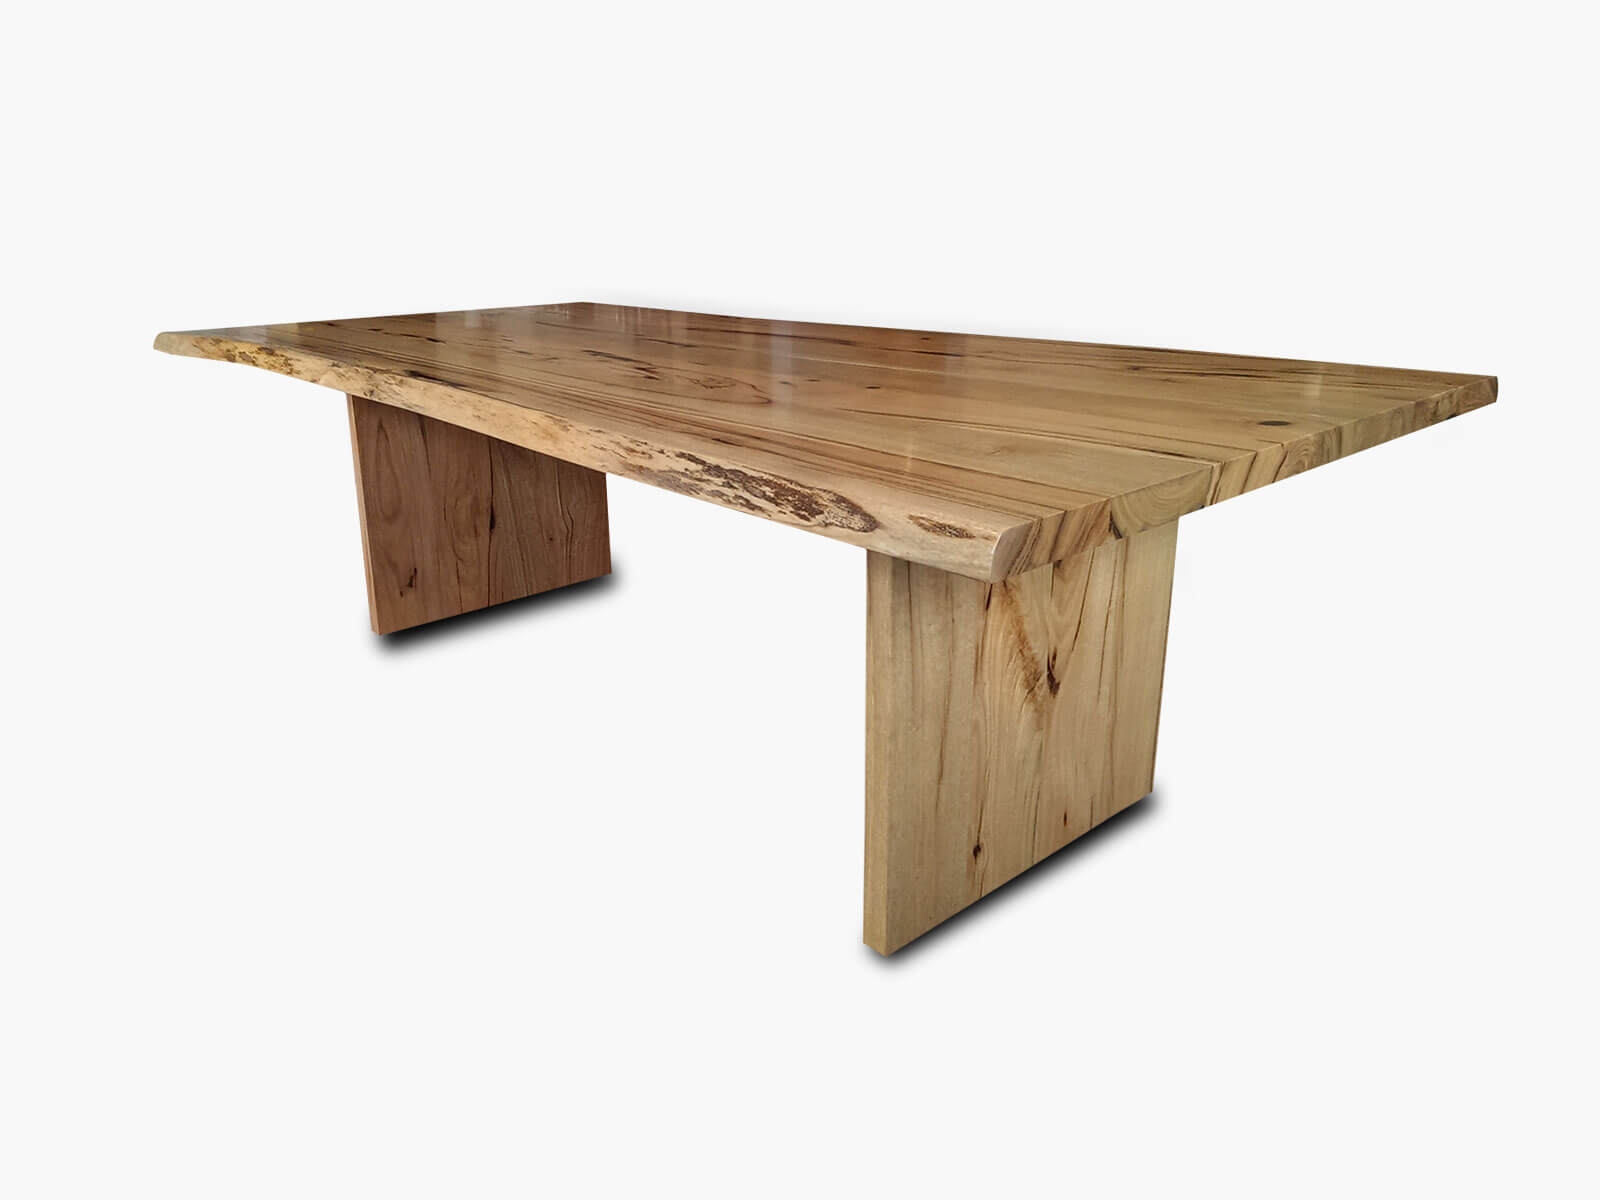 Mahogany-Creek-Raw Timber Furniture